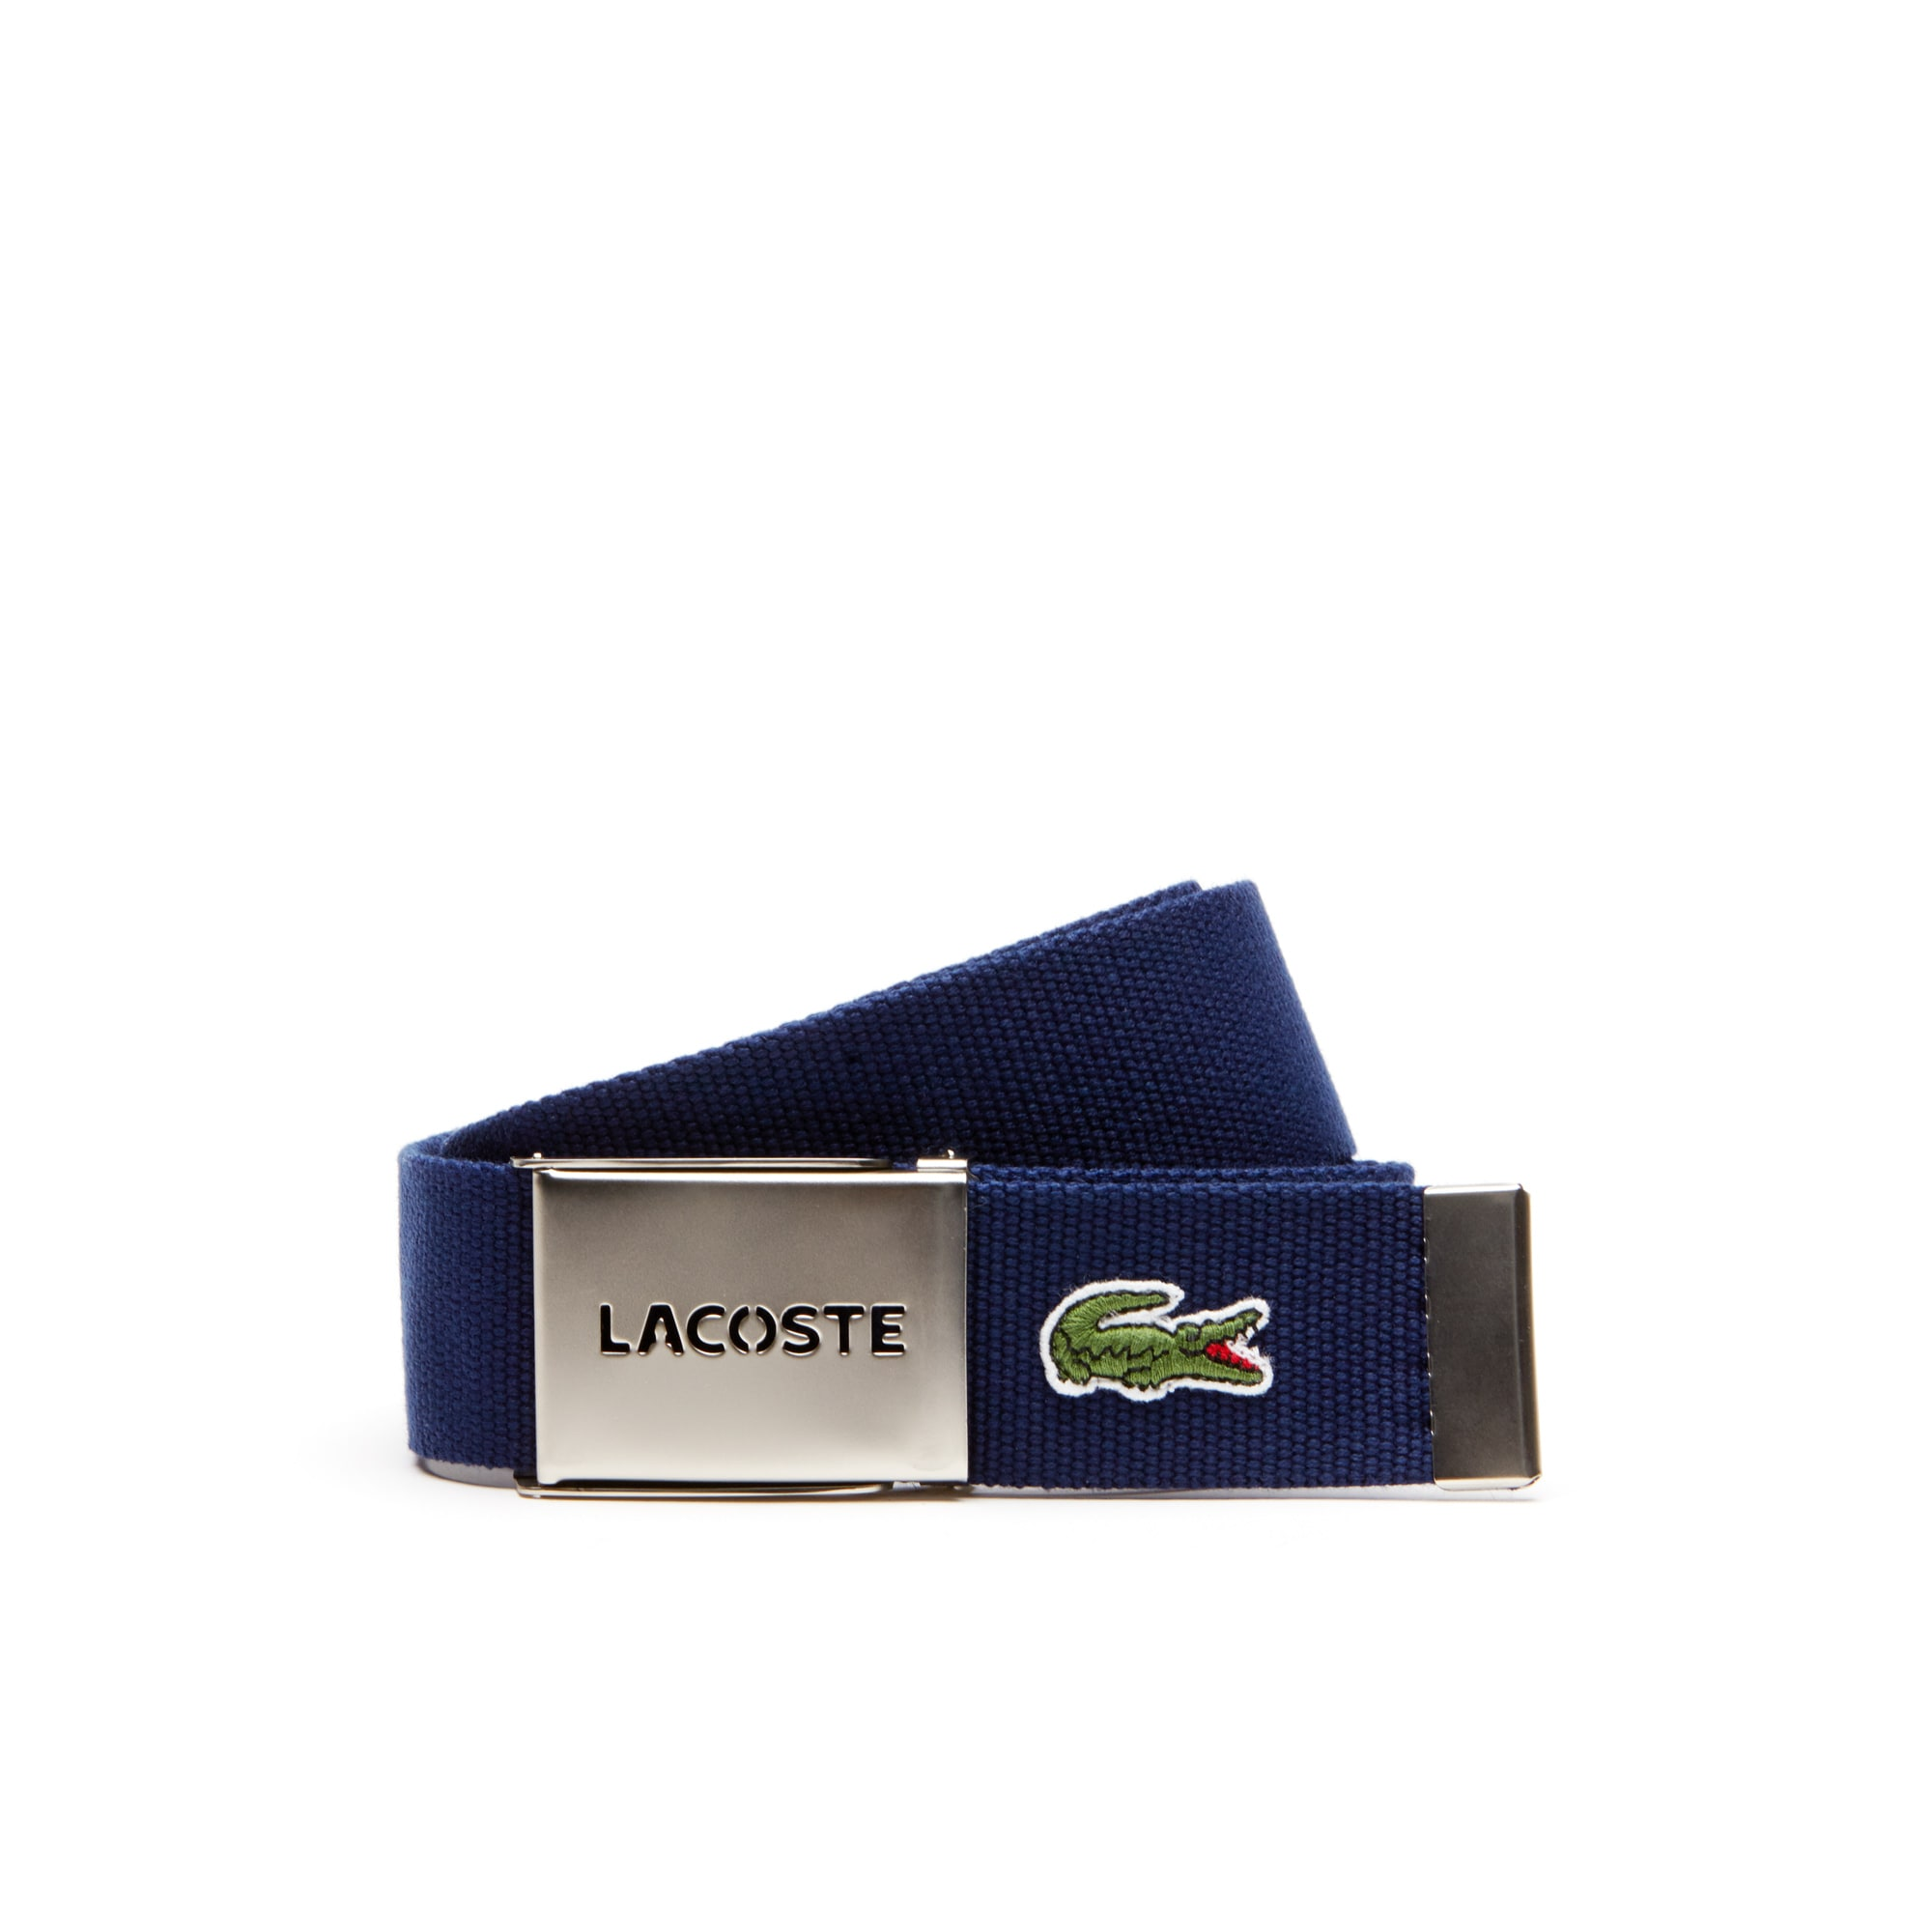 Men's Belt with perforated Lacoste plate